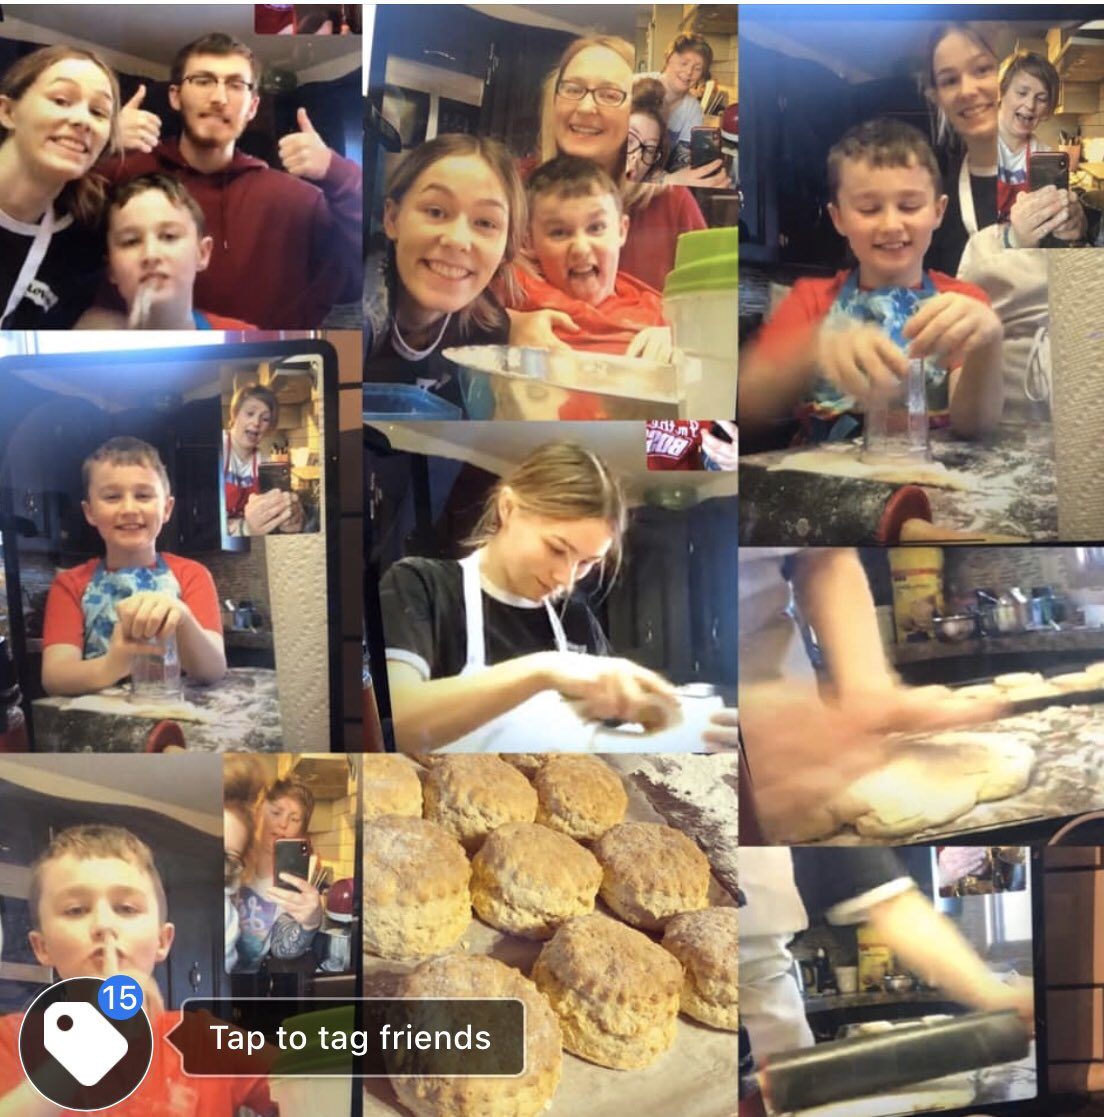 Our 1st online #Irish #Canadian #baking #masterclass is complete      #familypic.twitter.com/ZPrbxZwIwq